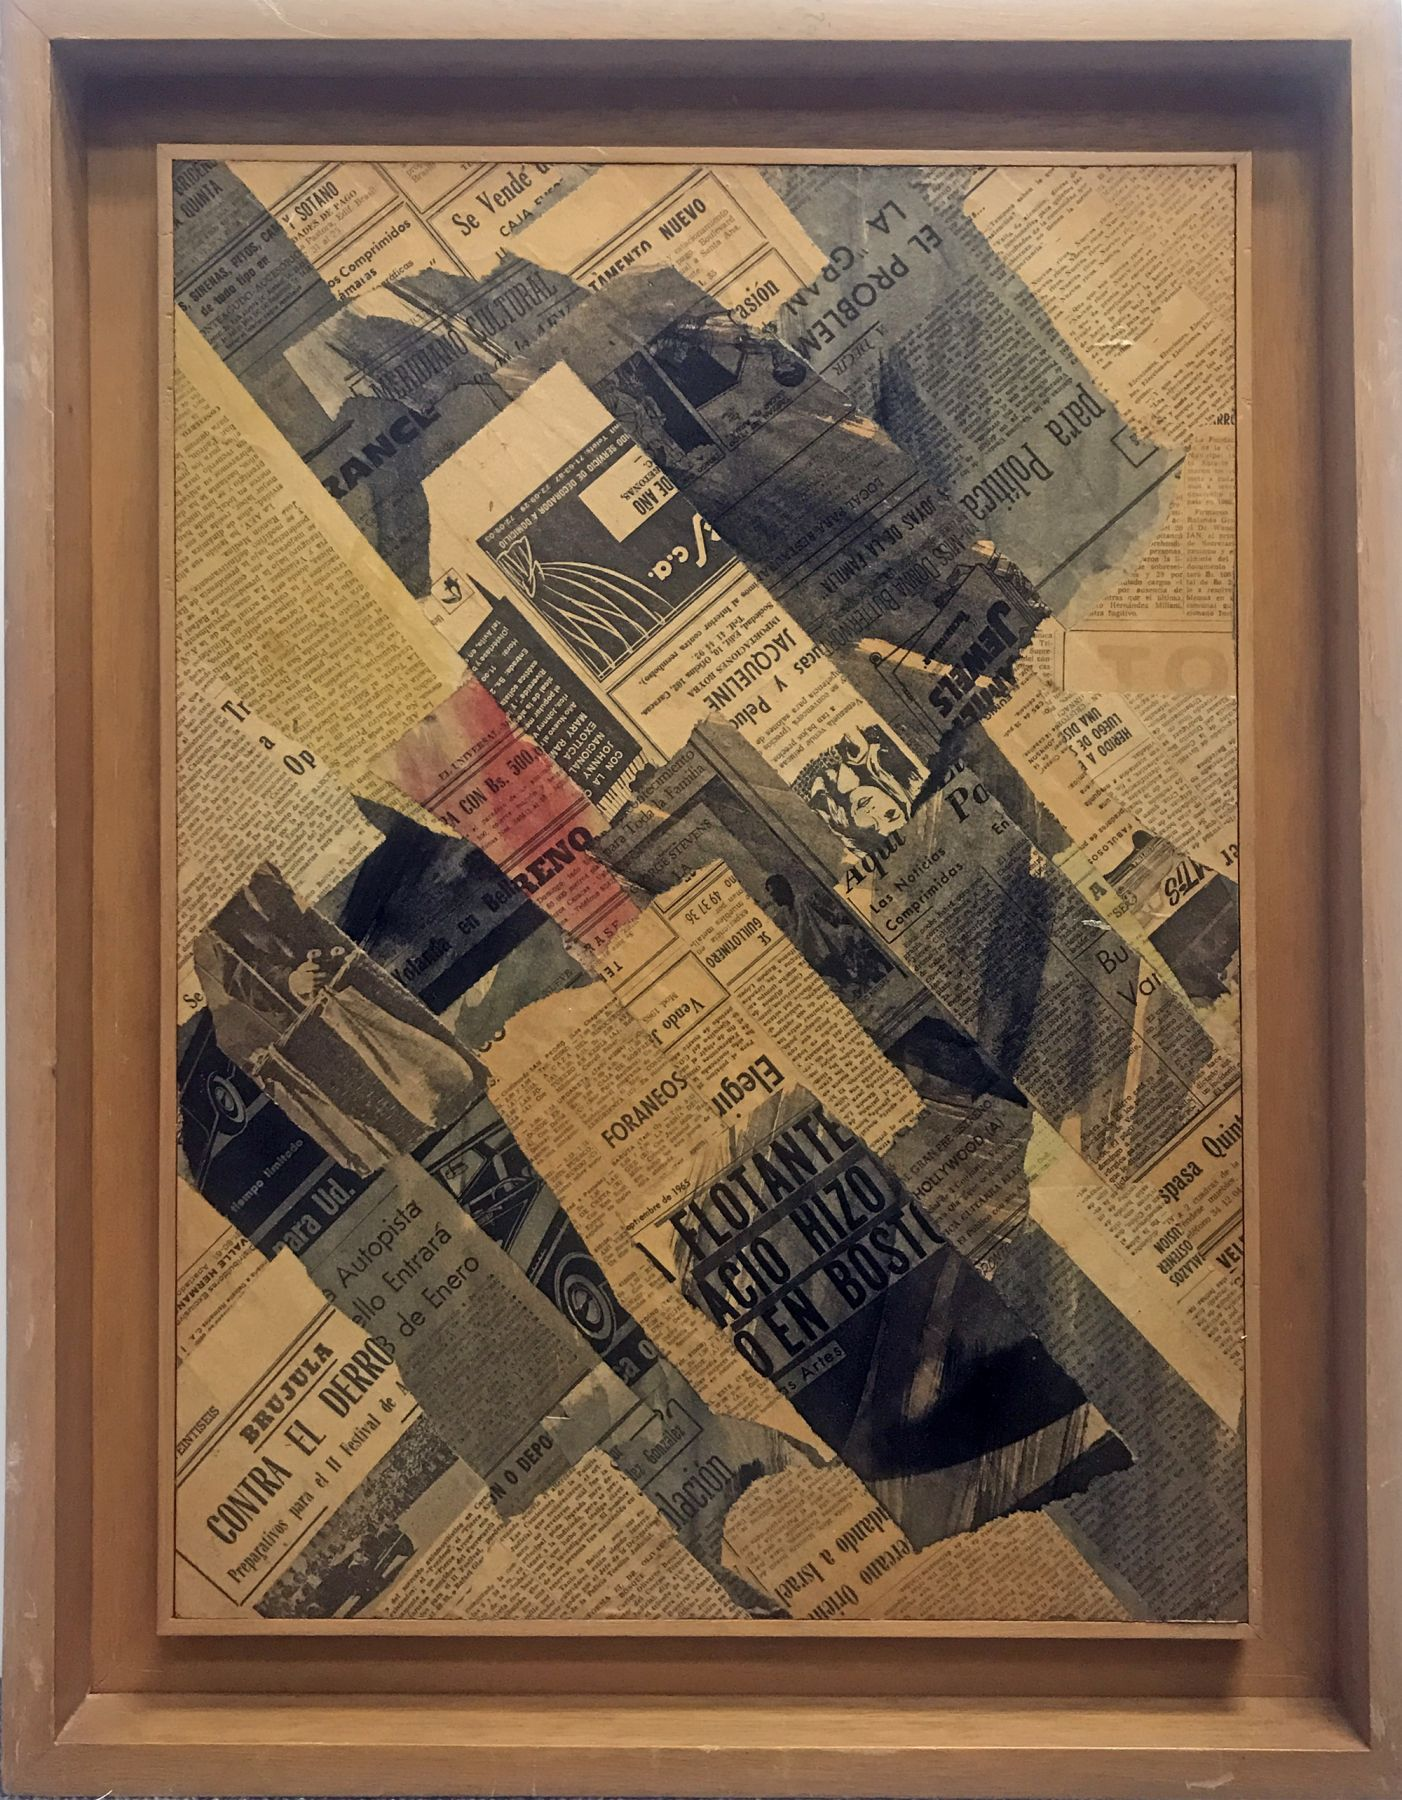 Alejandro Otero, Untitled, c. 1960,Glued papers on wood,25 15/16 x 21 5/8 in. (66 x 55 cm.)